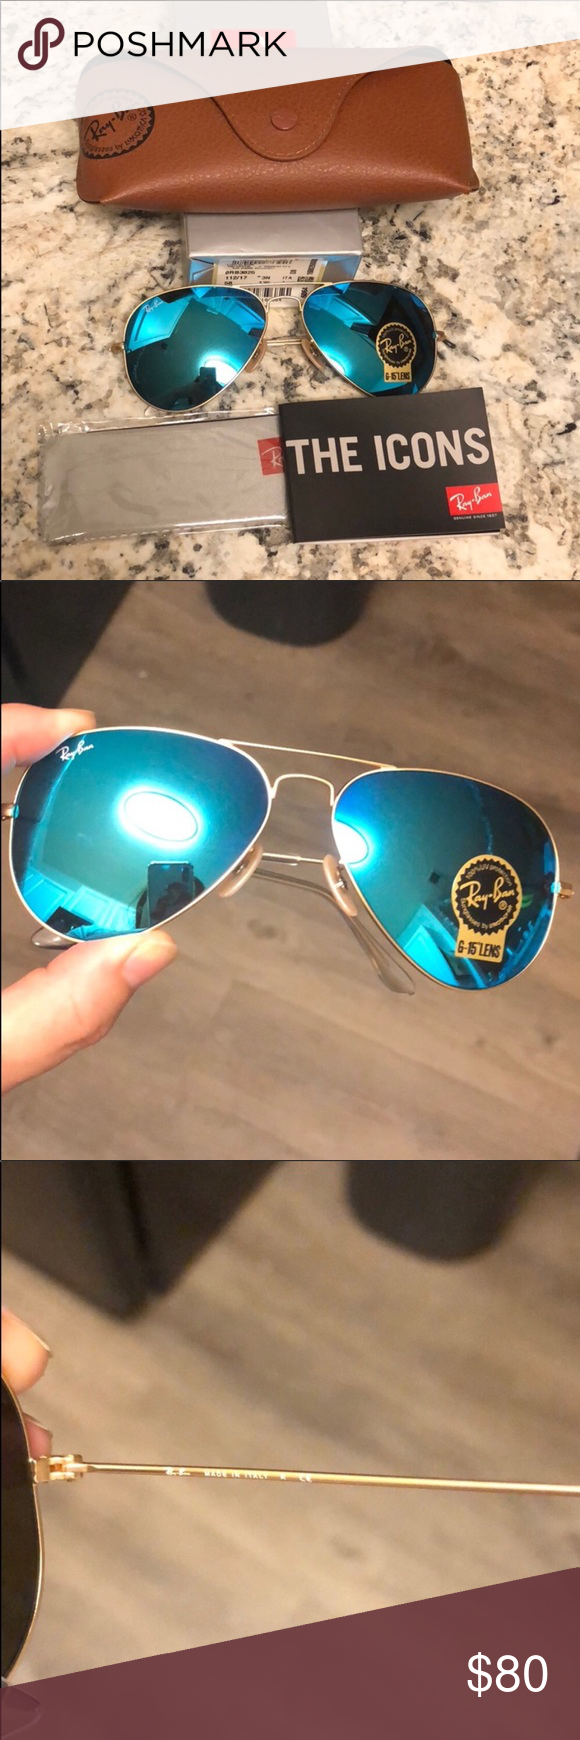 a49ce212a90 Rayban sunglasses blue rayban sunglasses blue come with all accessories ray  ban accessories sunglasses png 580x1740